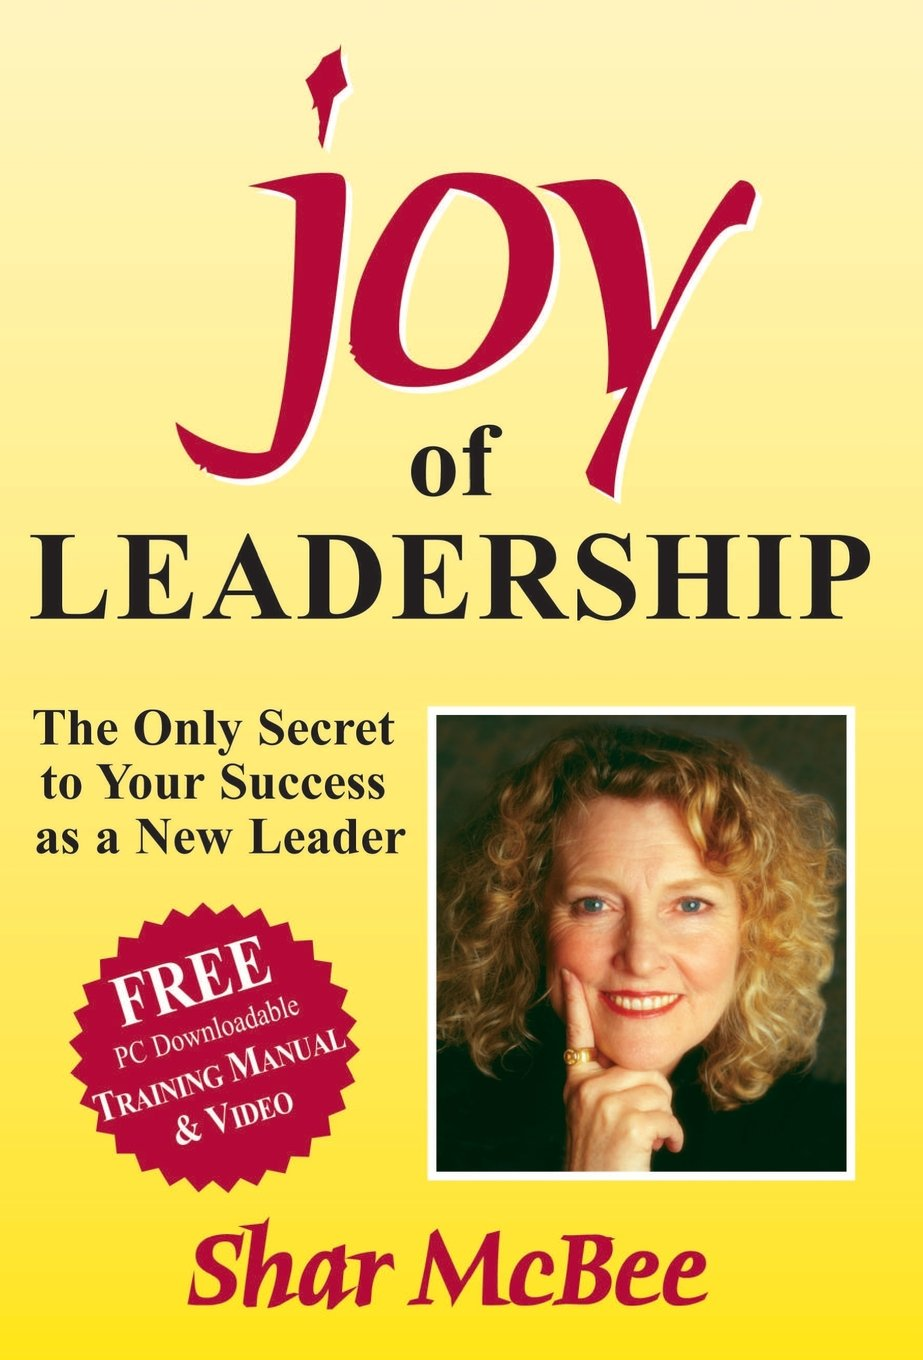 Download Joy of Leadership: The Only Secret to Your Success as a New Leader (Joy of Leadership Series) ebook